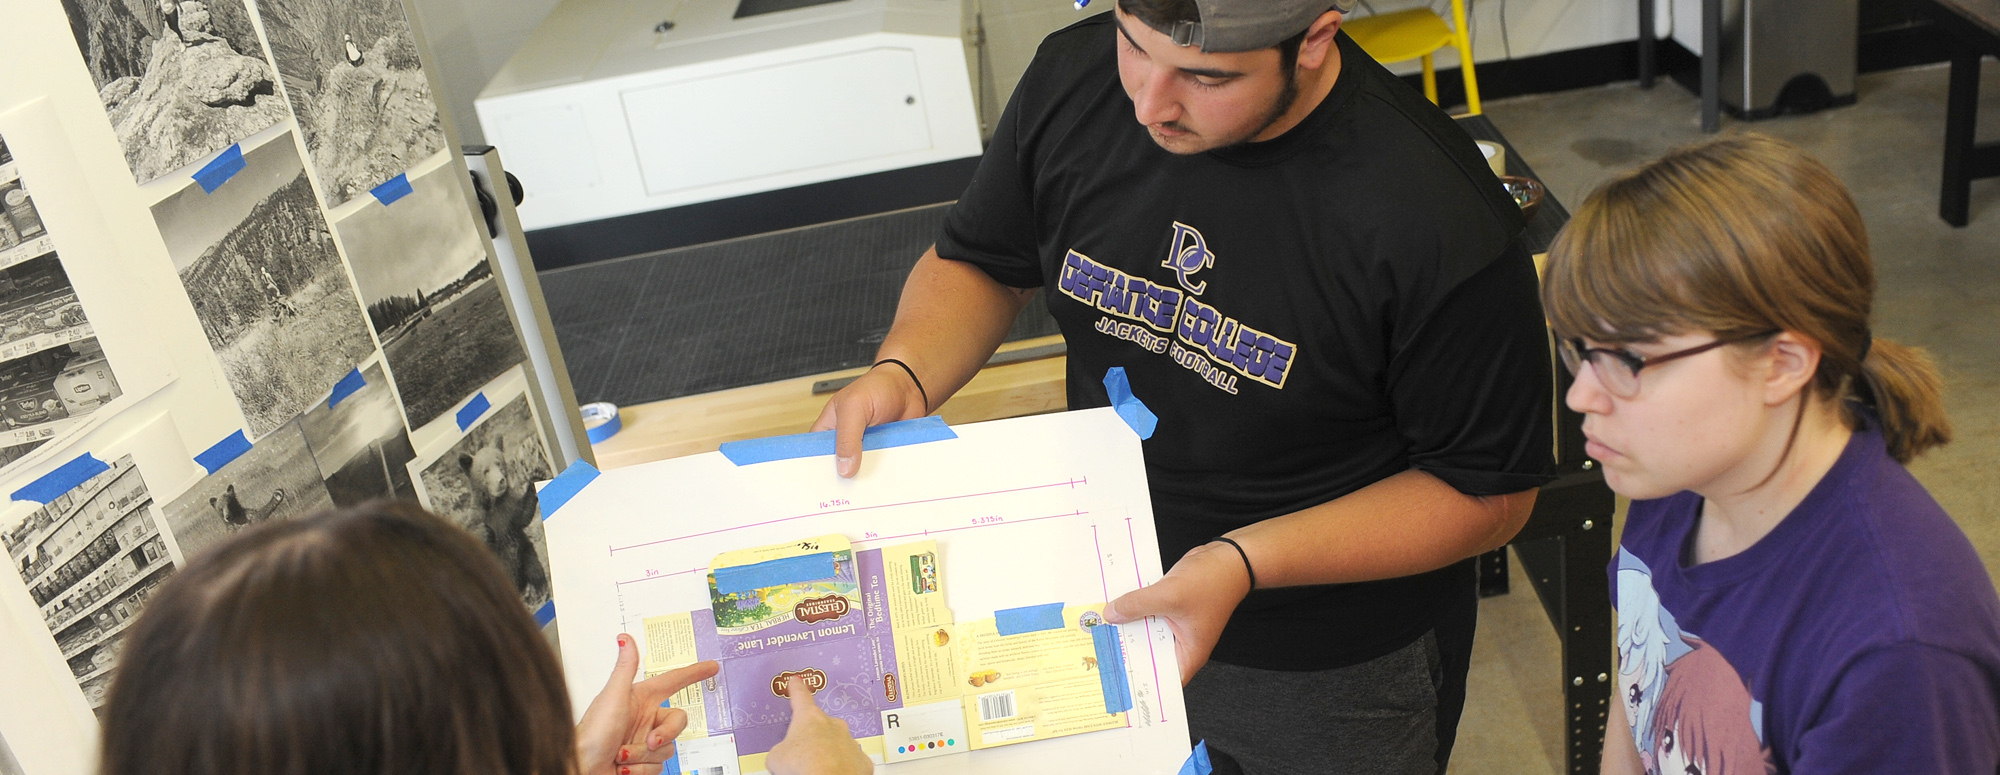 two students looking at a design project on a board